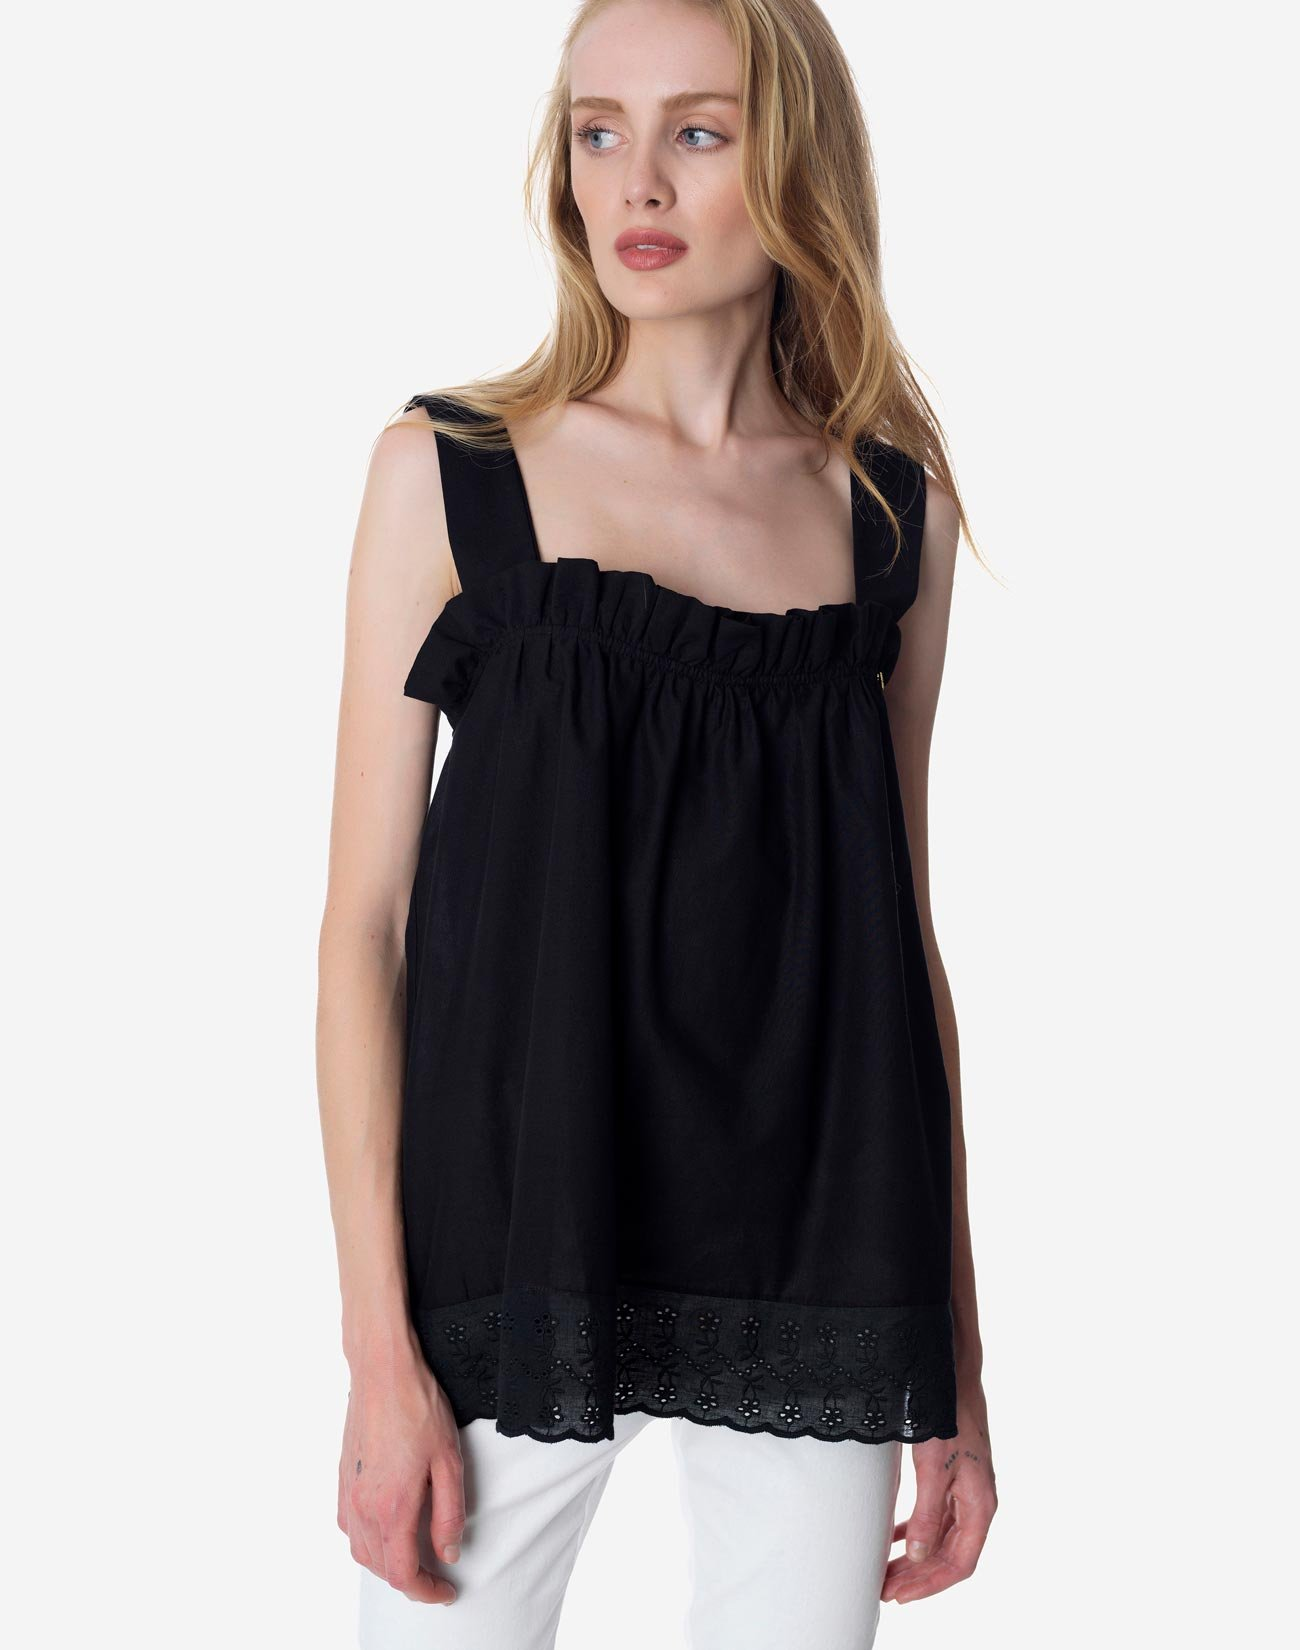 Ruffled top with lace